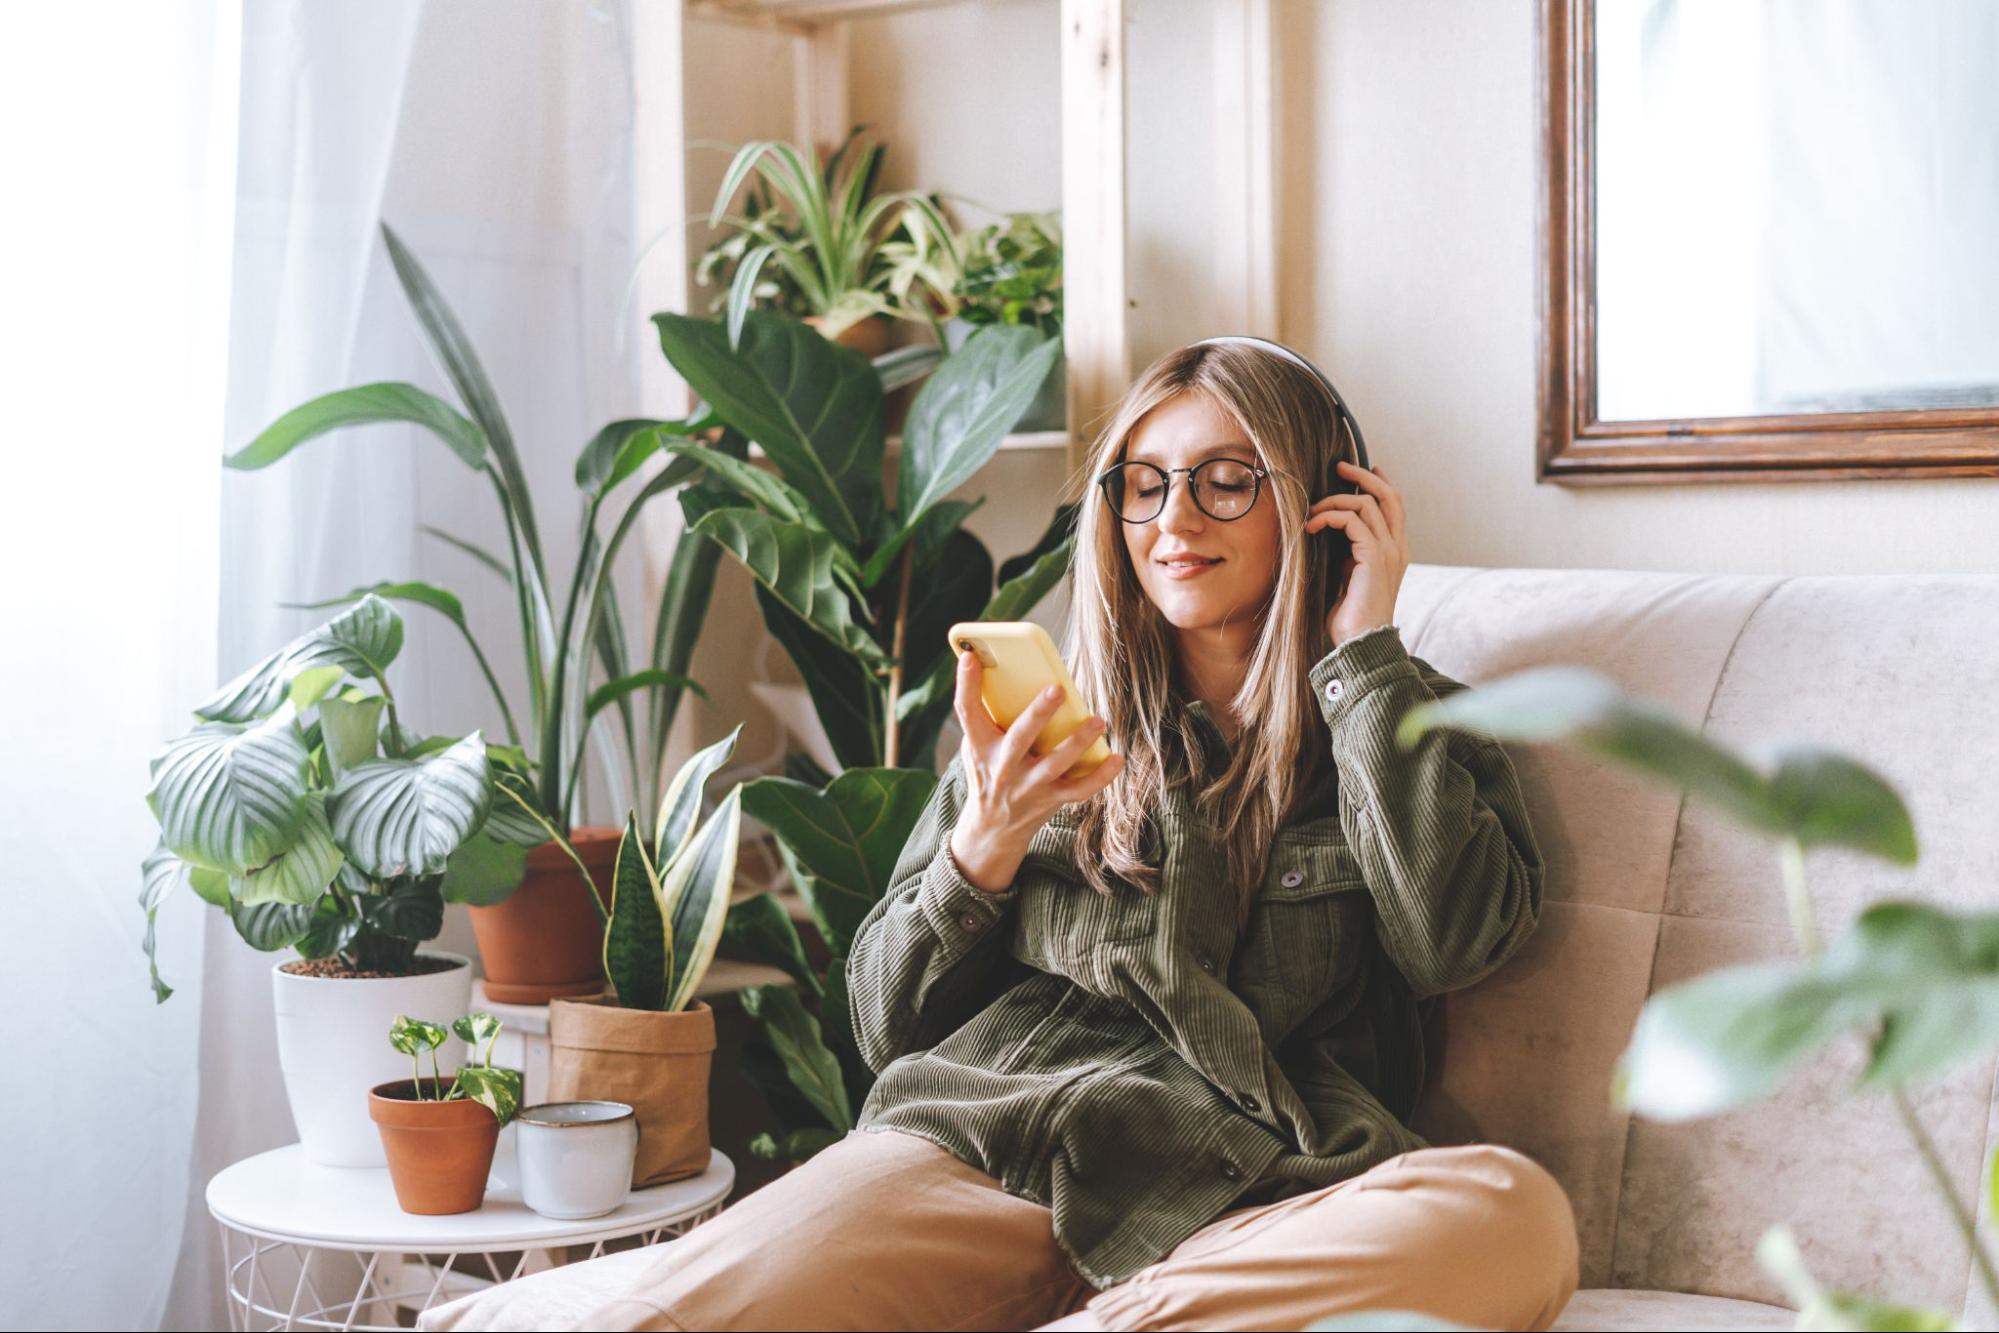 Woman looks at her phone in her furnished apartment